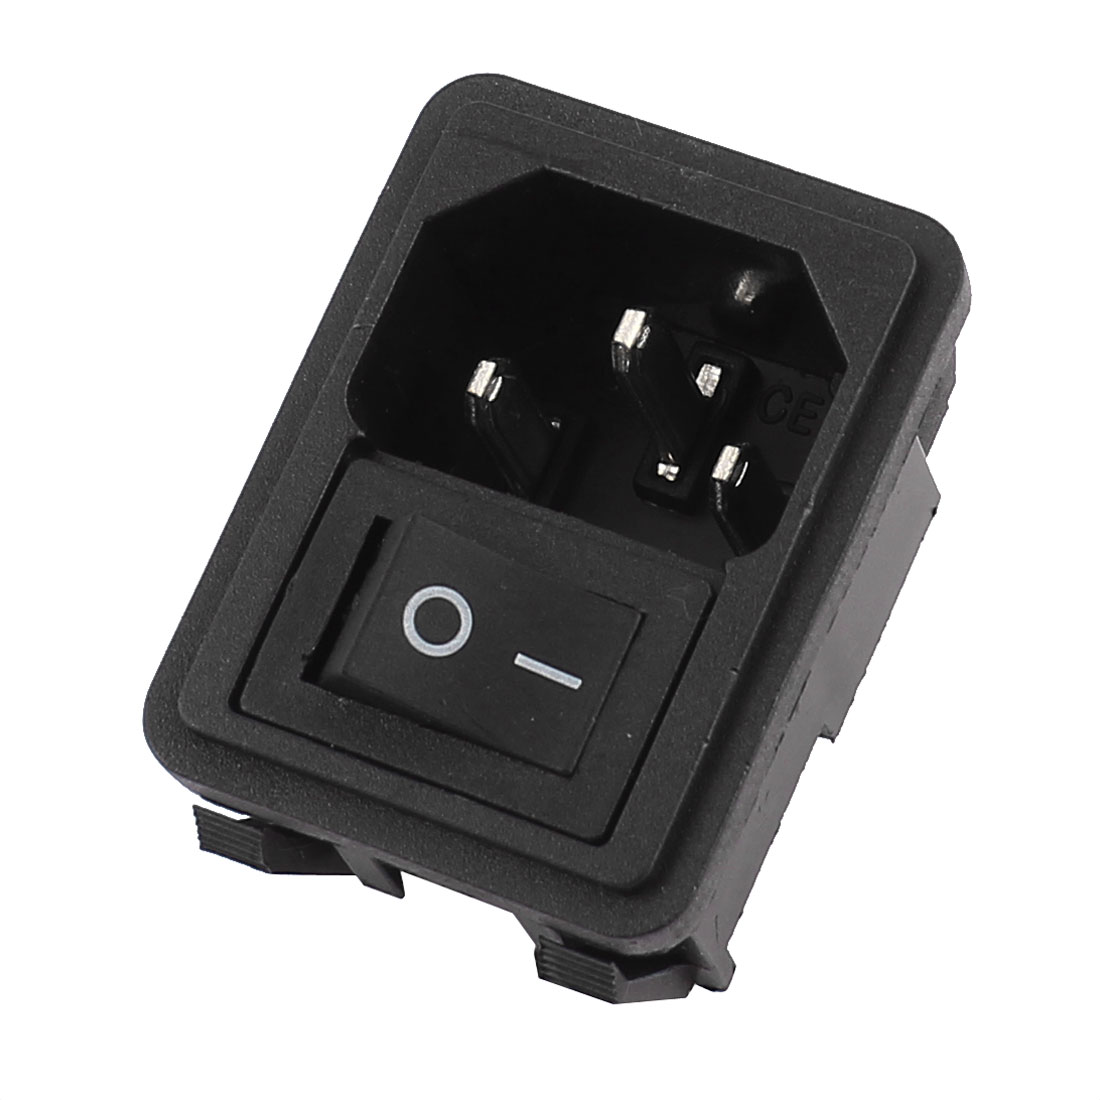 AC 250V 10A 2 Terminals Black On-Off Rocker Switch Inlet Power Socket